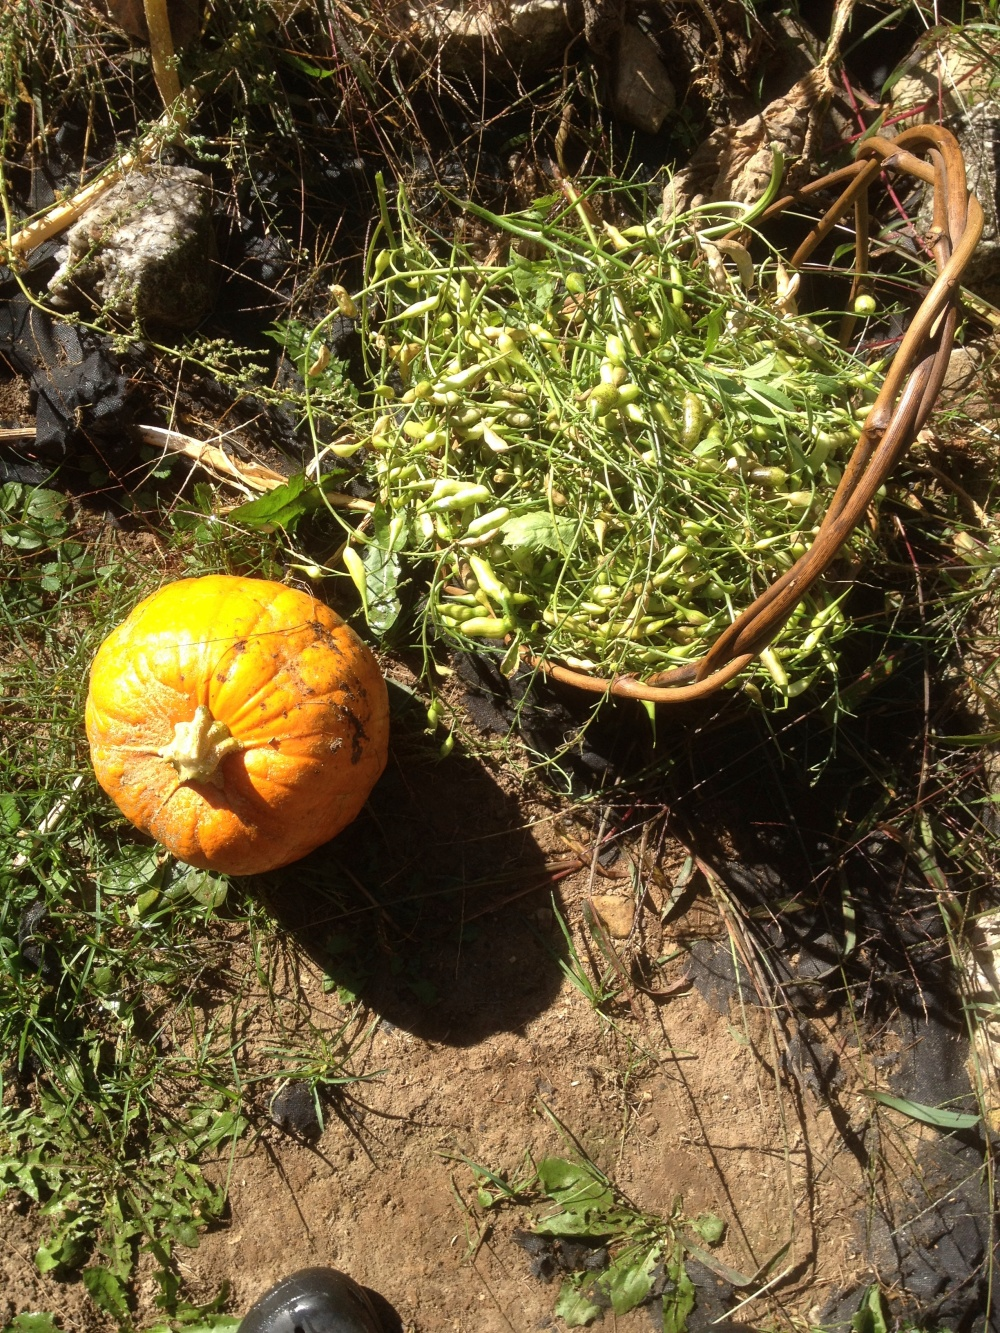 More pumpkins and radish seed pods.